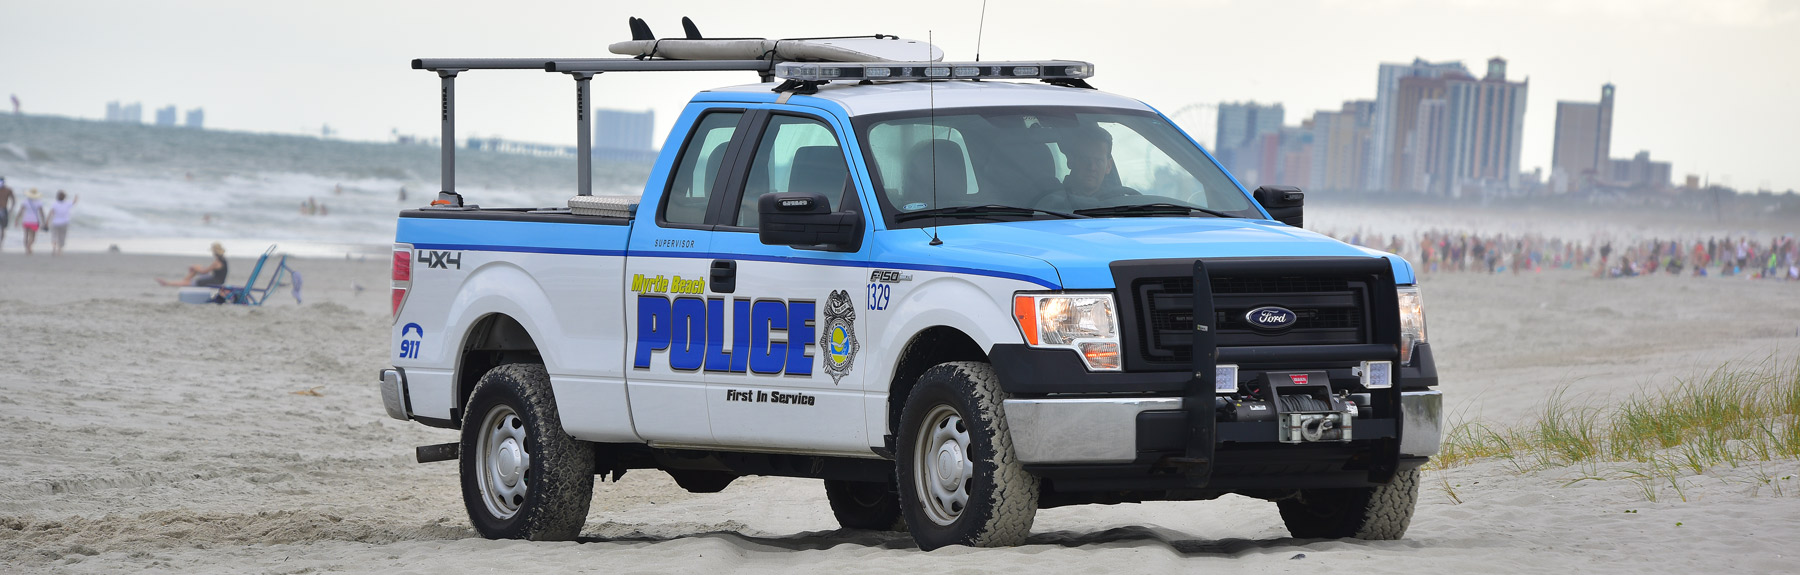 Myrtle Beach Ford >> Hiring Testing Process Myrtle Beach Police Department